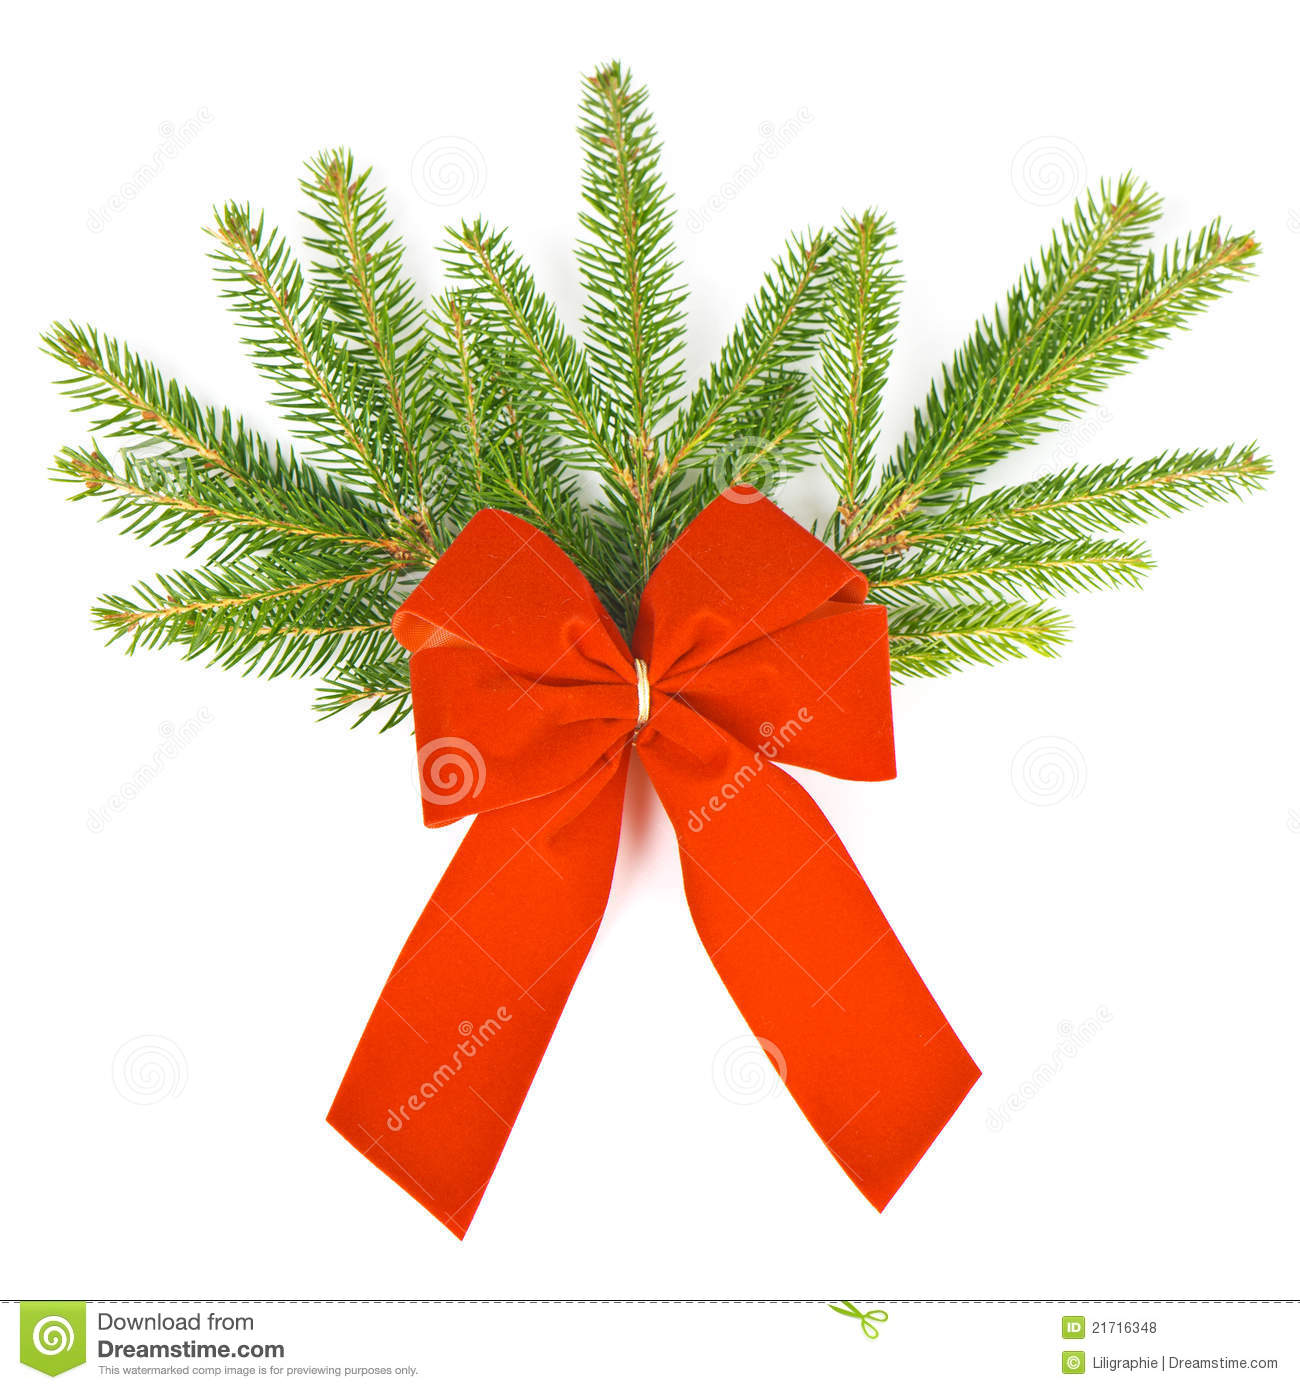 Christmas Tree With Red Ribbon: Branch Of Christmas Tree With Red Ribbon Stock Photo